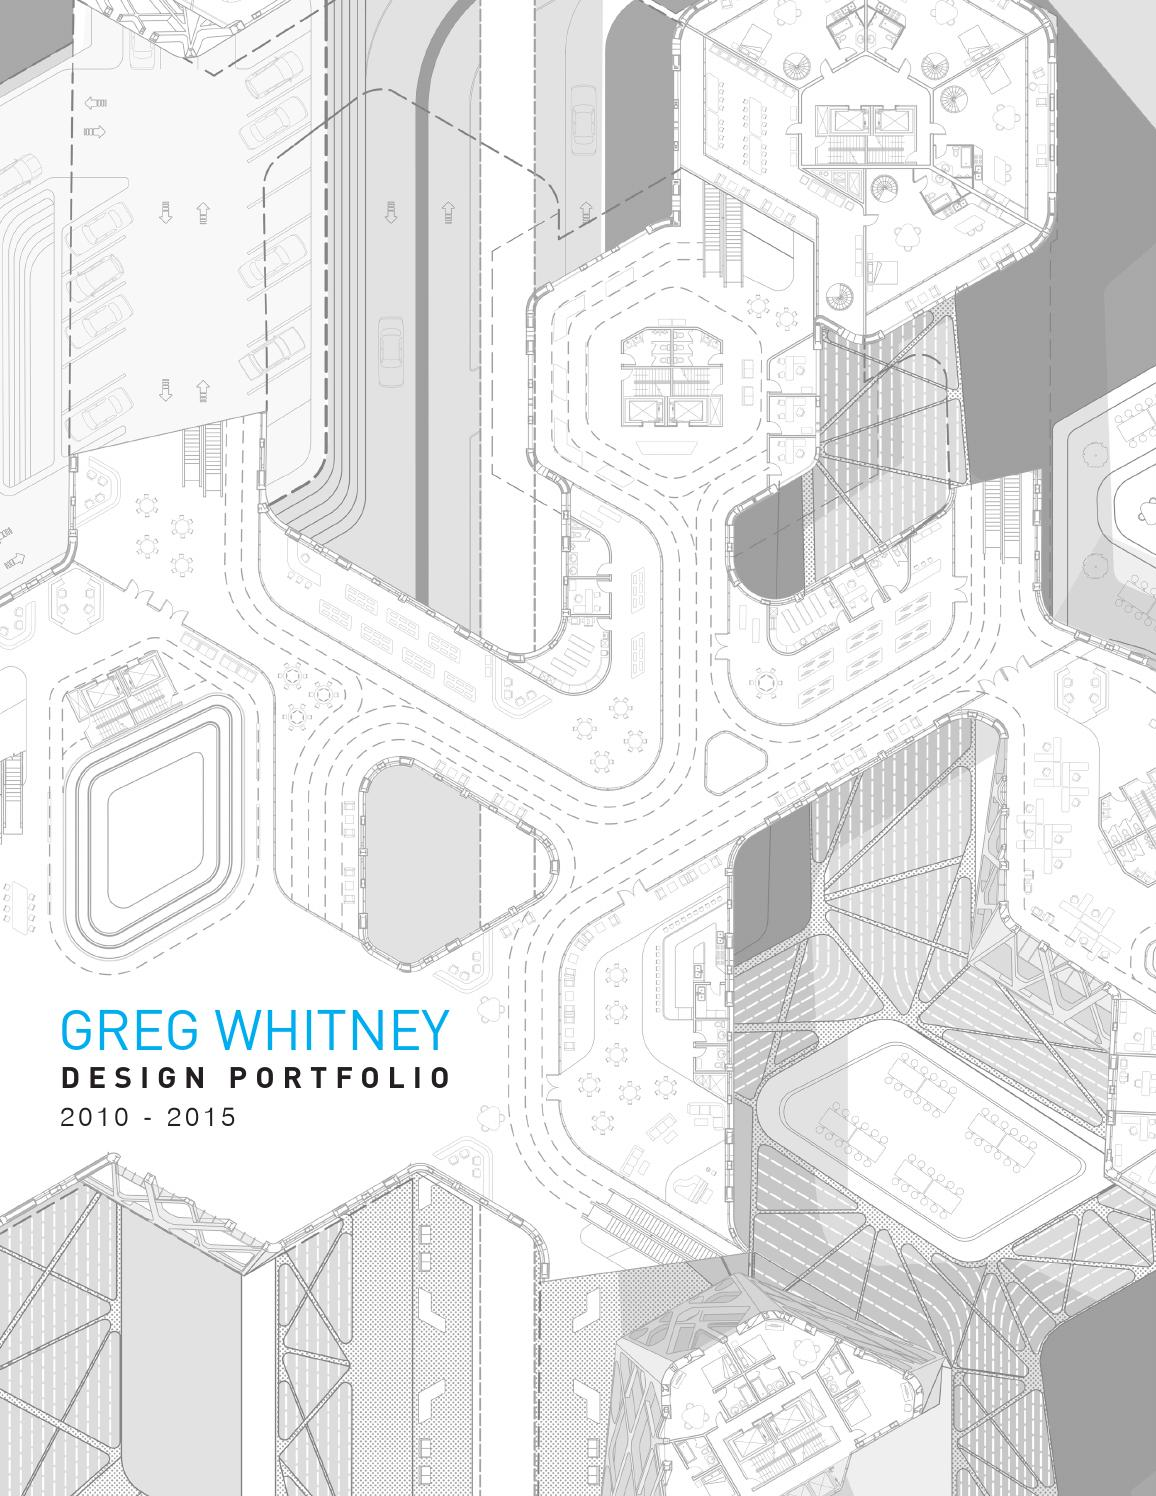 greg whitney architecture portfolio by greg whitney